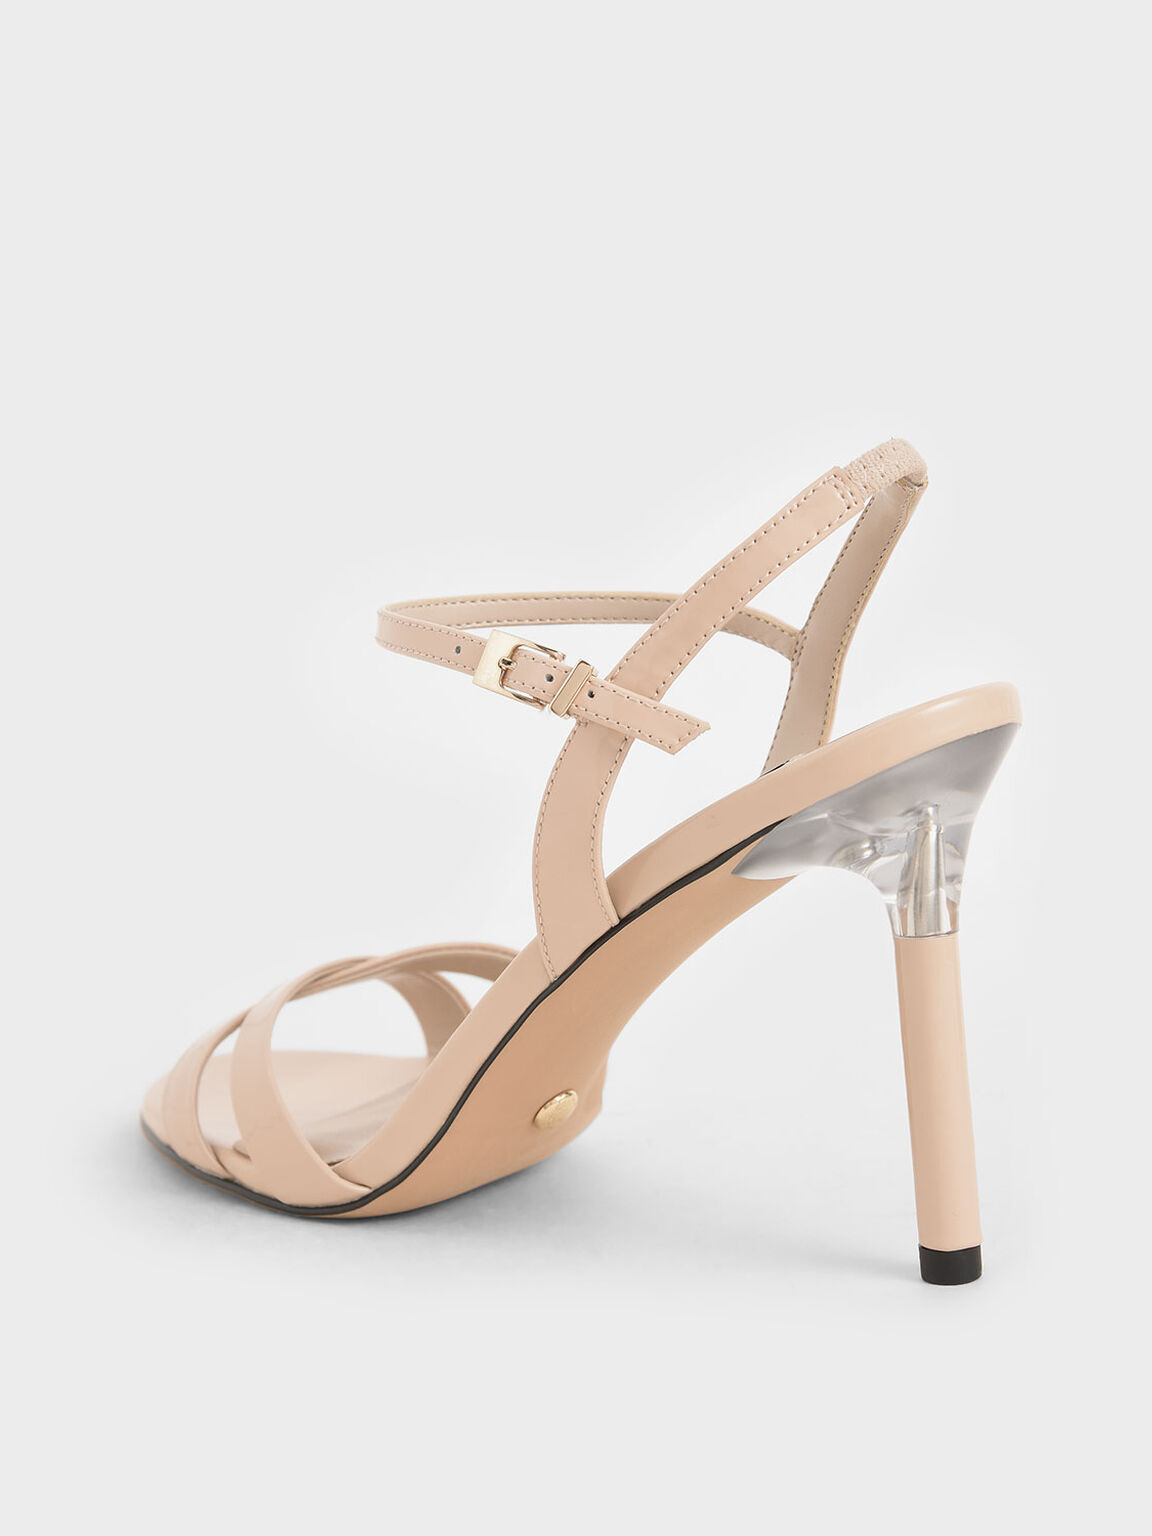 Patent Leather Criss-Cross Heels, Light Pink, hi-res